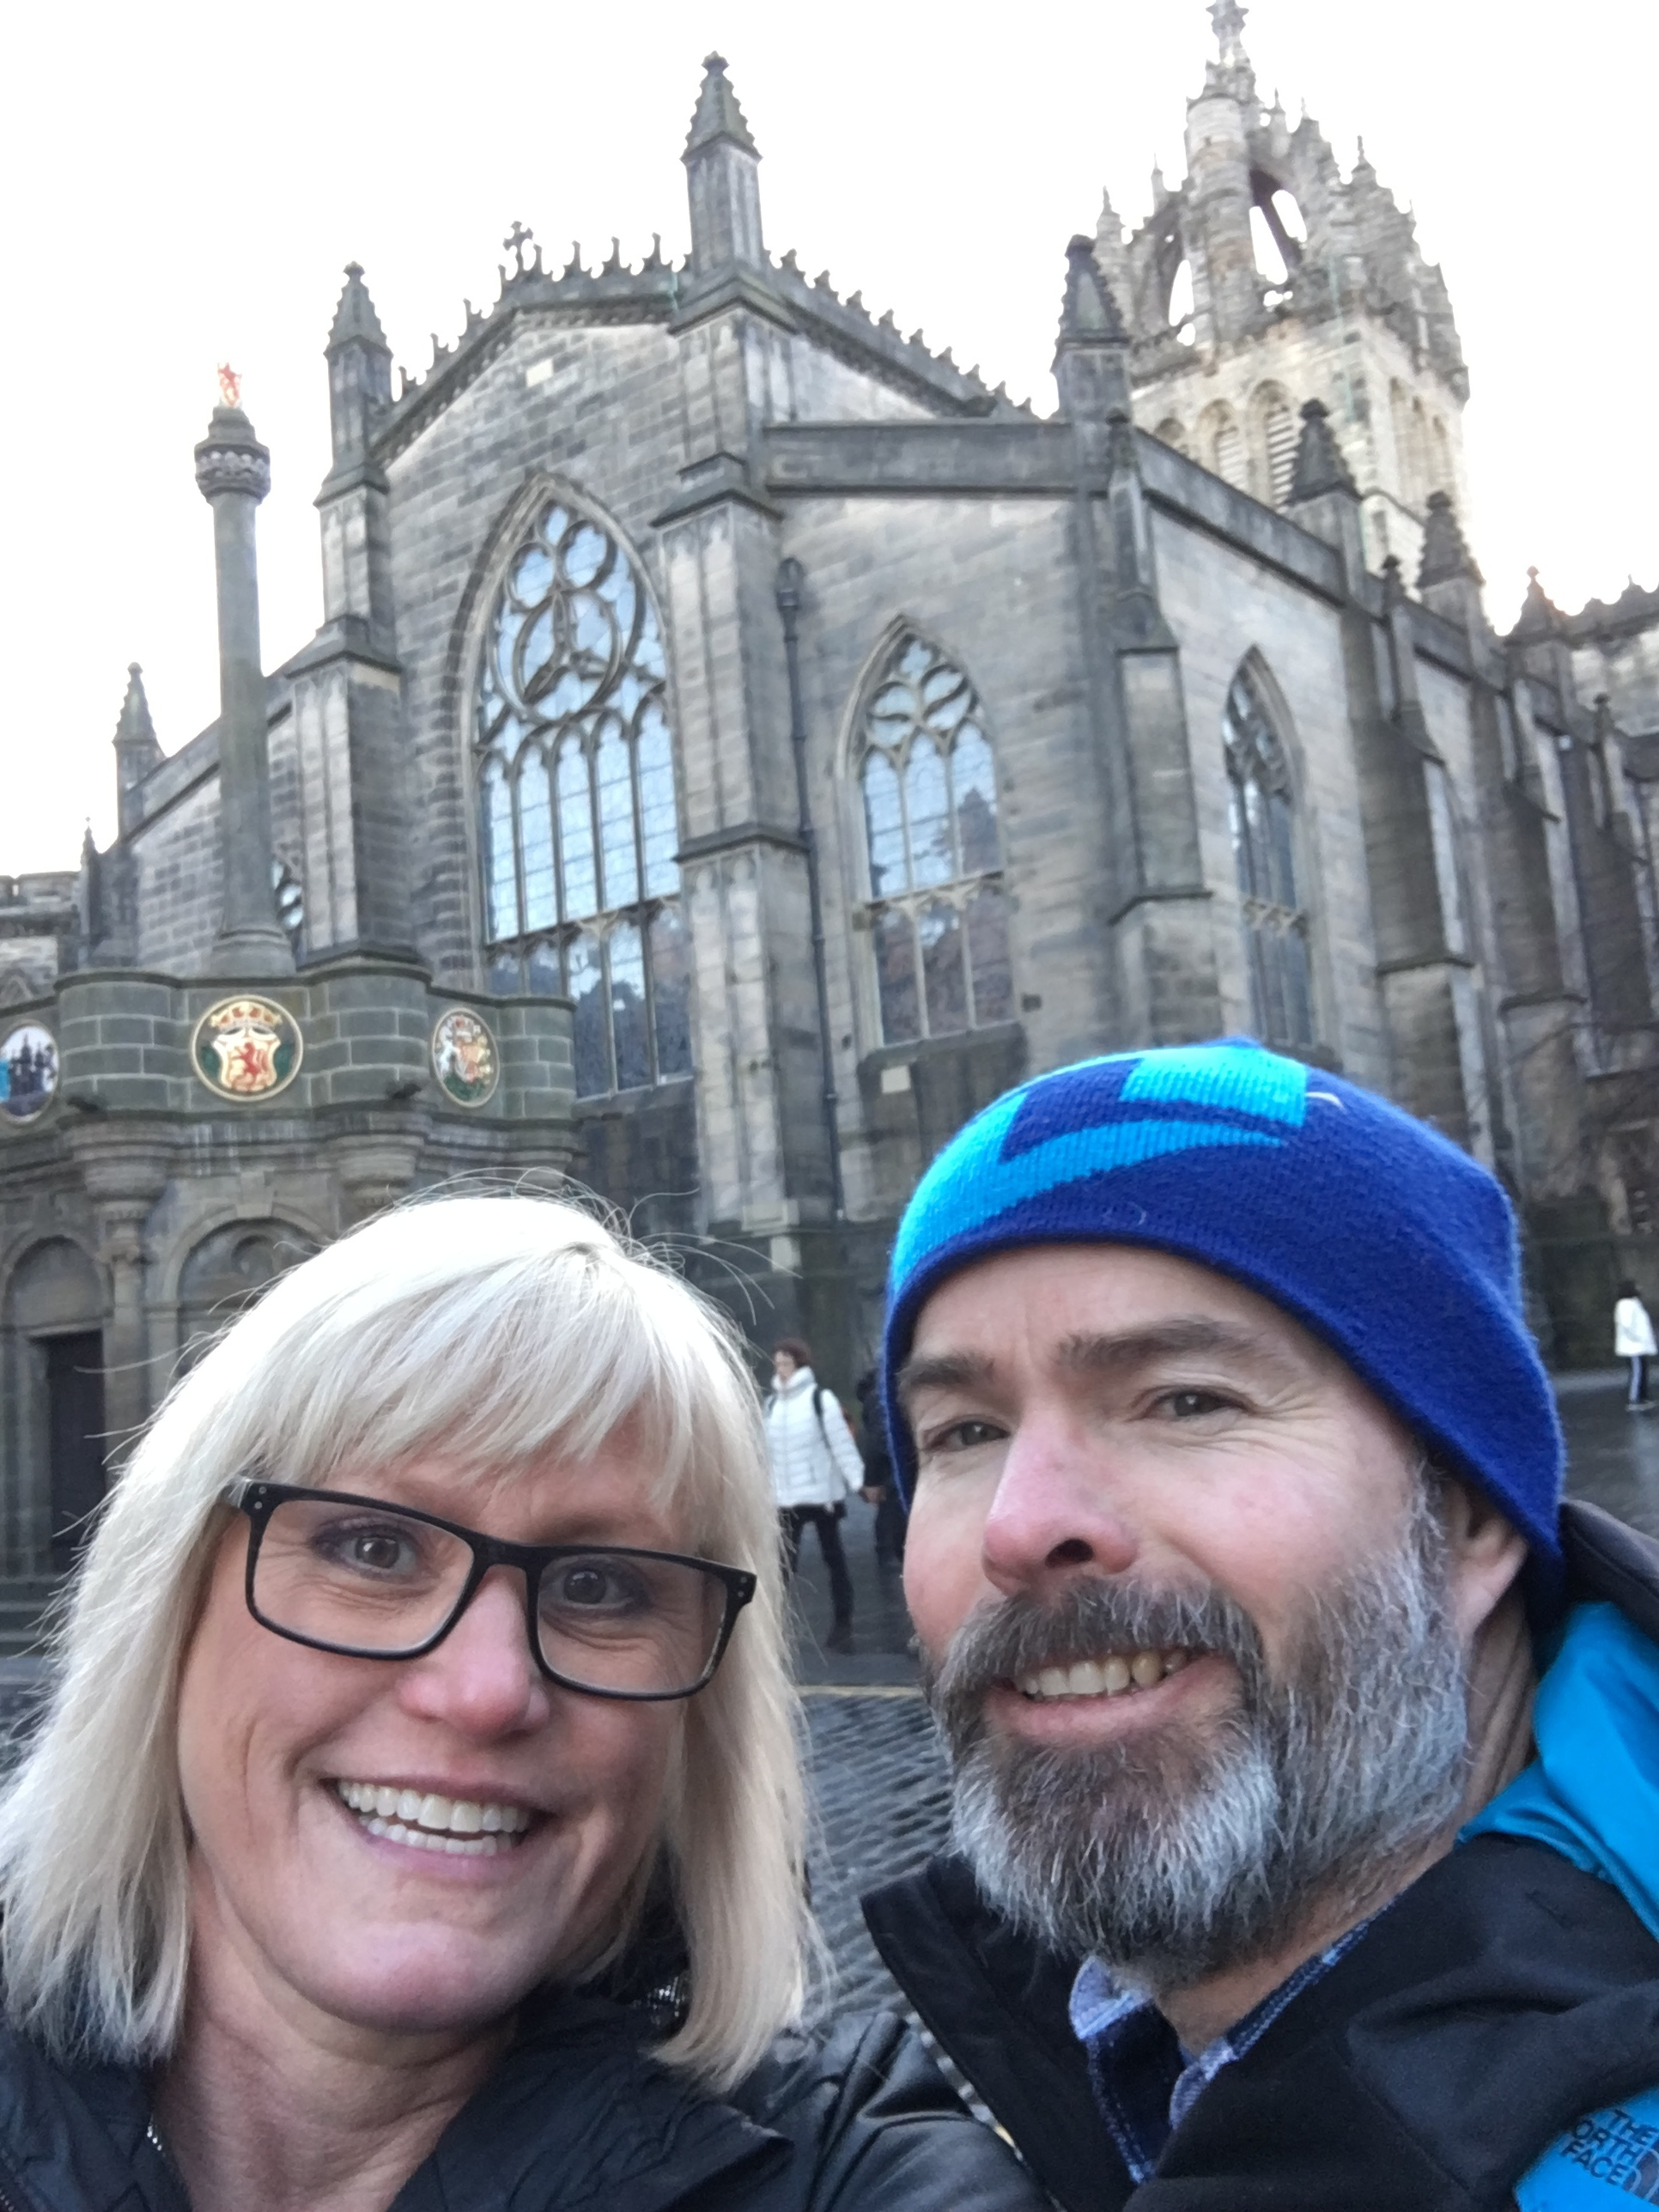 In front of the Edinburgh Castle.